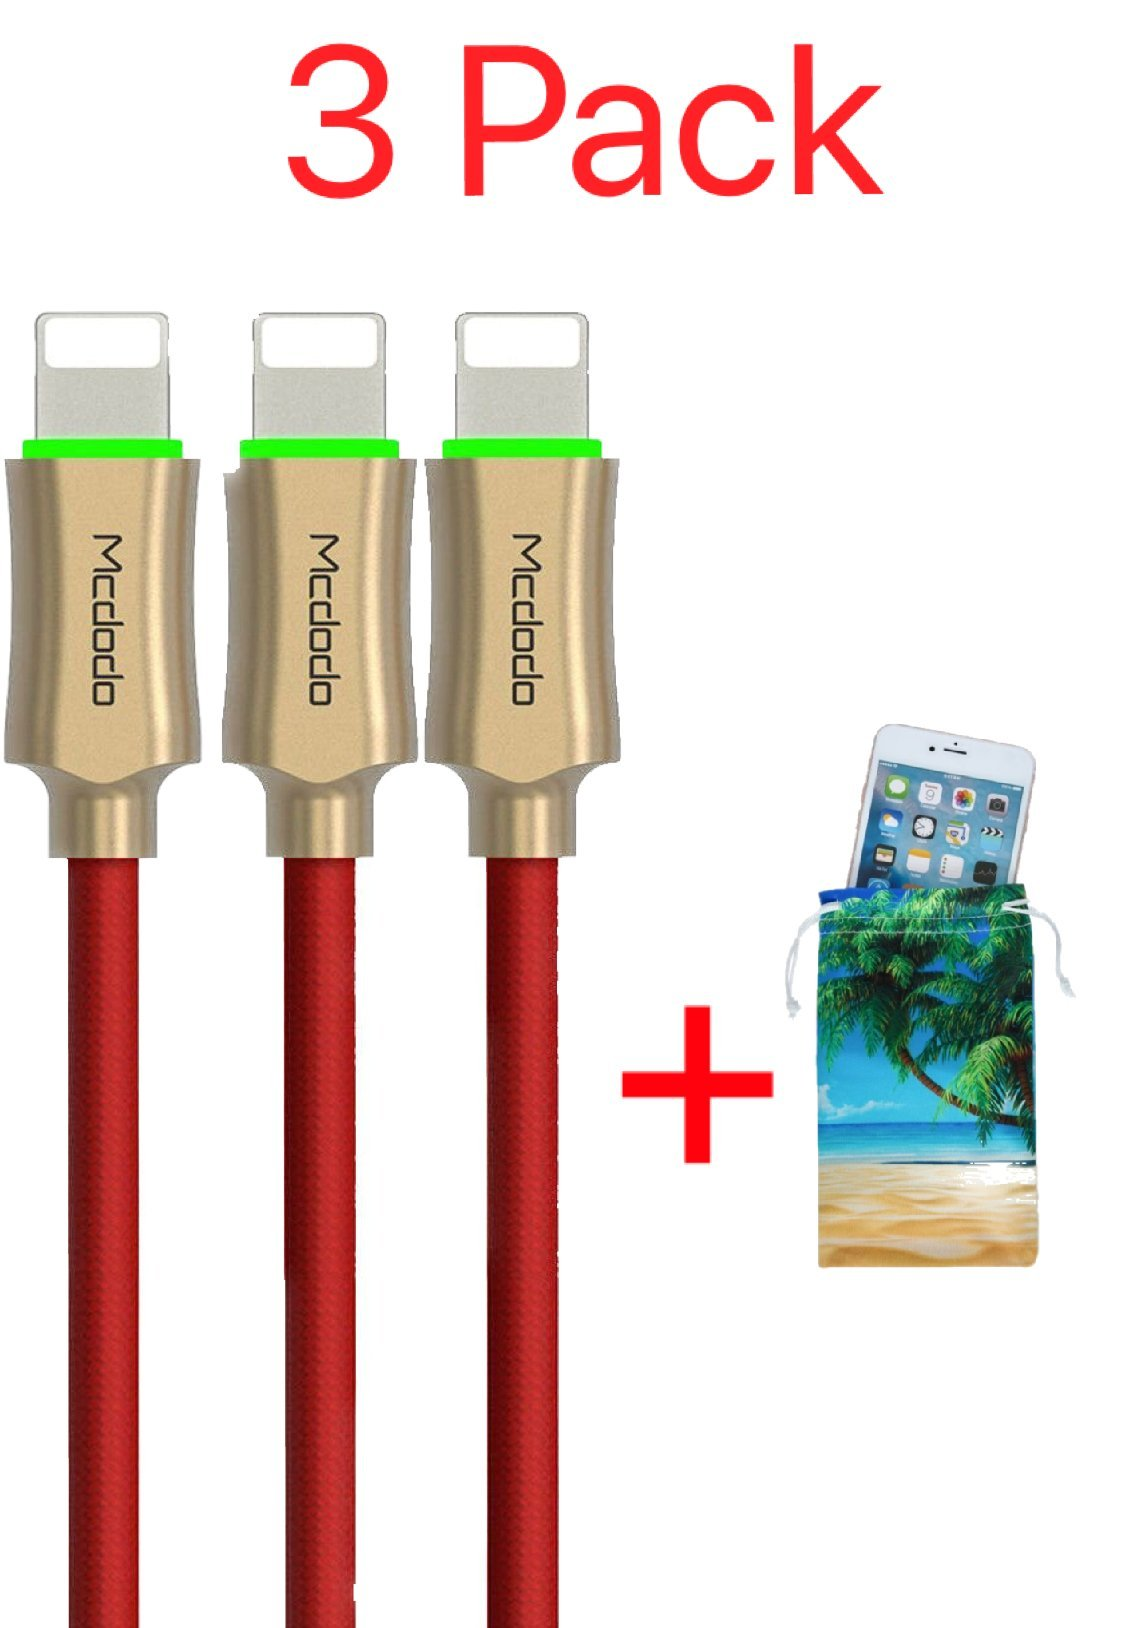 (3 Pack + iPhone Bag) Power Off Smart LED Auto Disconnect Lightning Nylon Braided Sync Charge USB Data 6FT/1.8M Cable For iPhone, iPod and iPad By Mcdodo (6FT Red) by MCDODO